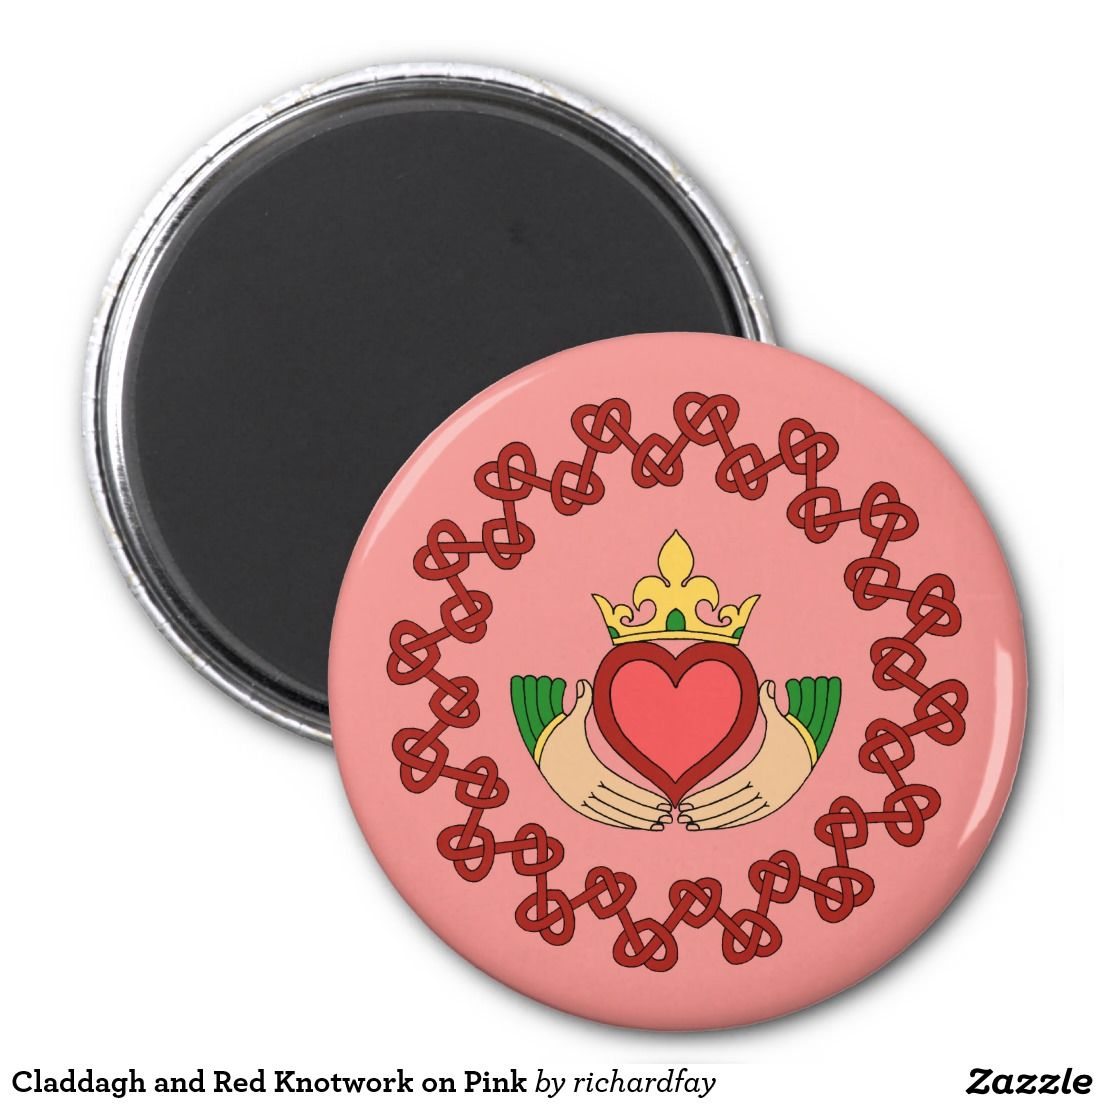 Claddagh and Red Knotwork on Pink Magnet | Claddagh, Round magnets ...